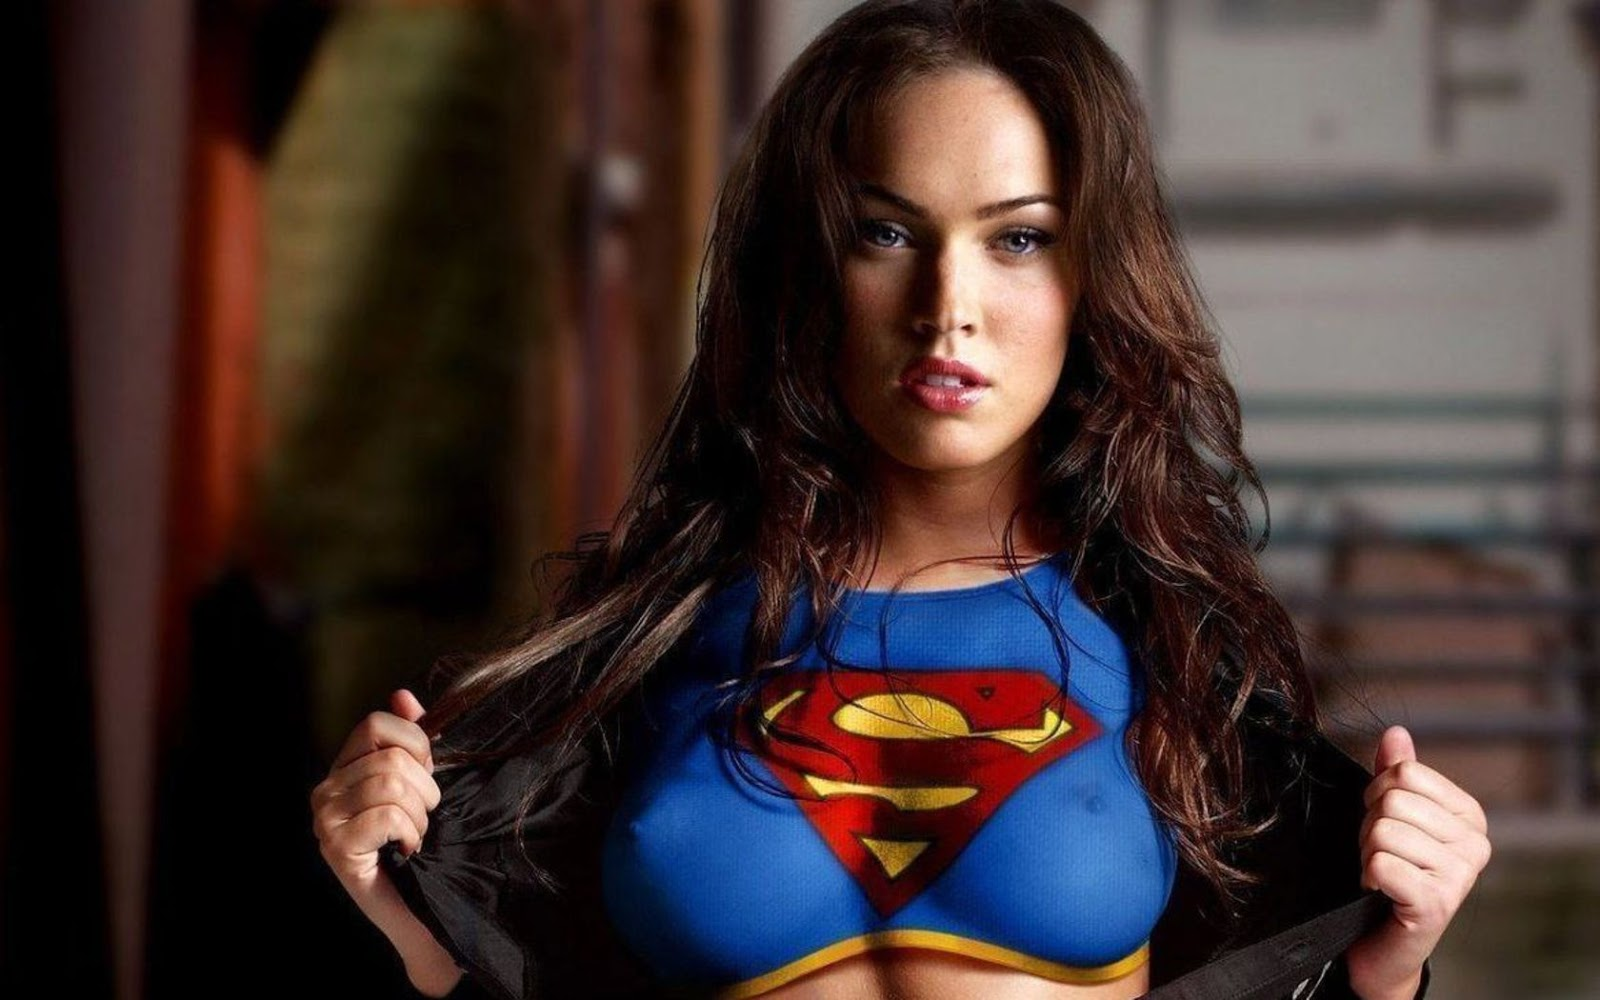 Megan Fox images megan fox super girl wallpaper HD ...